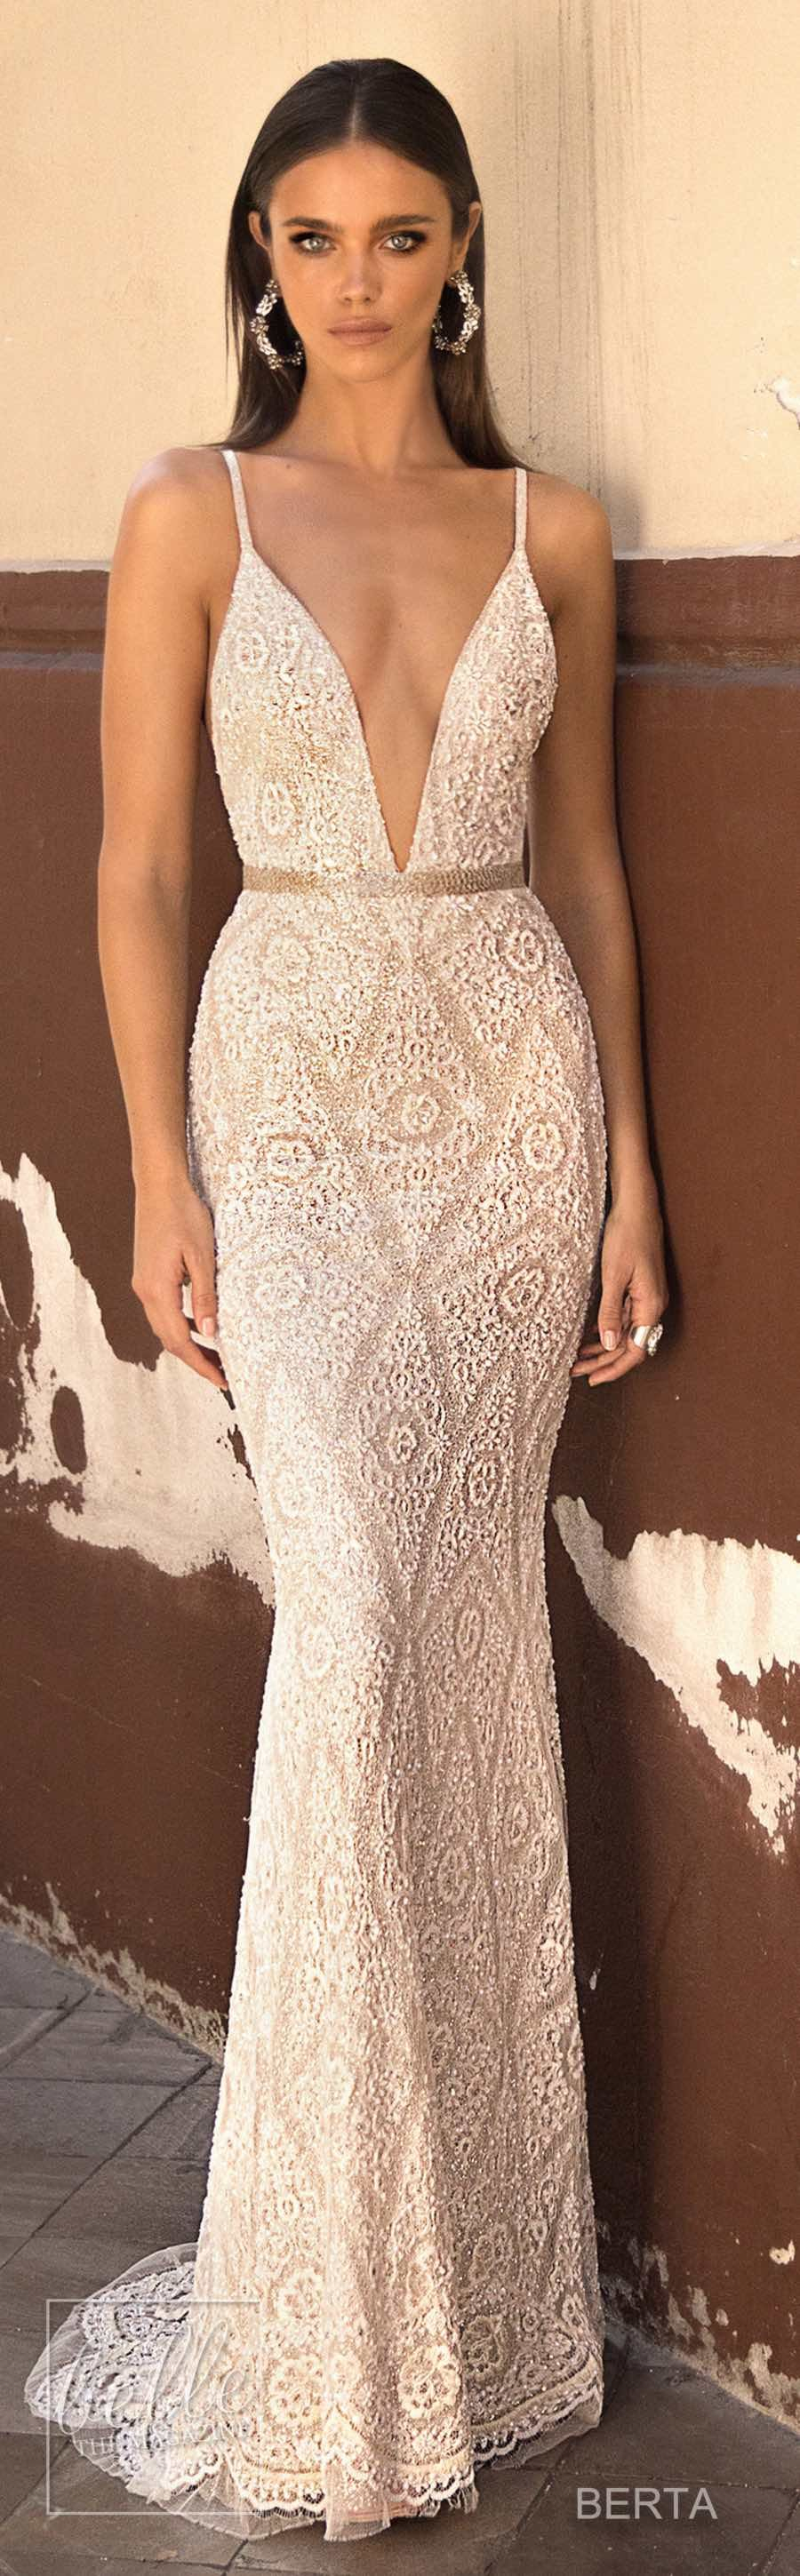 Berta fall seville wedding dress collection dress collection